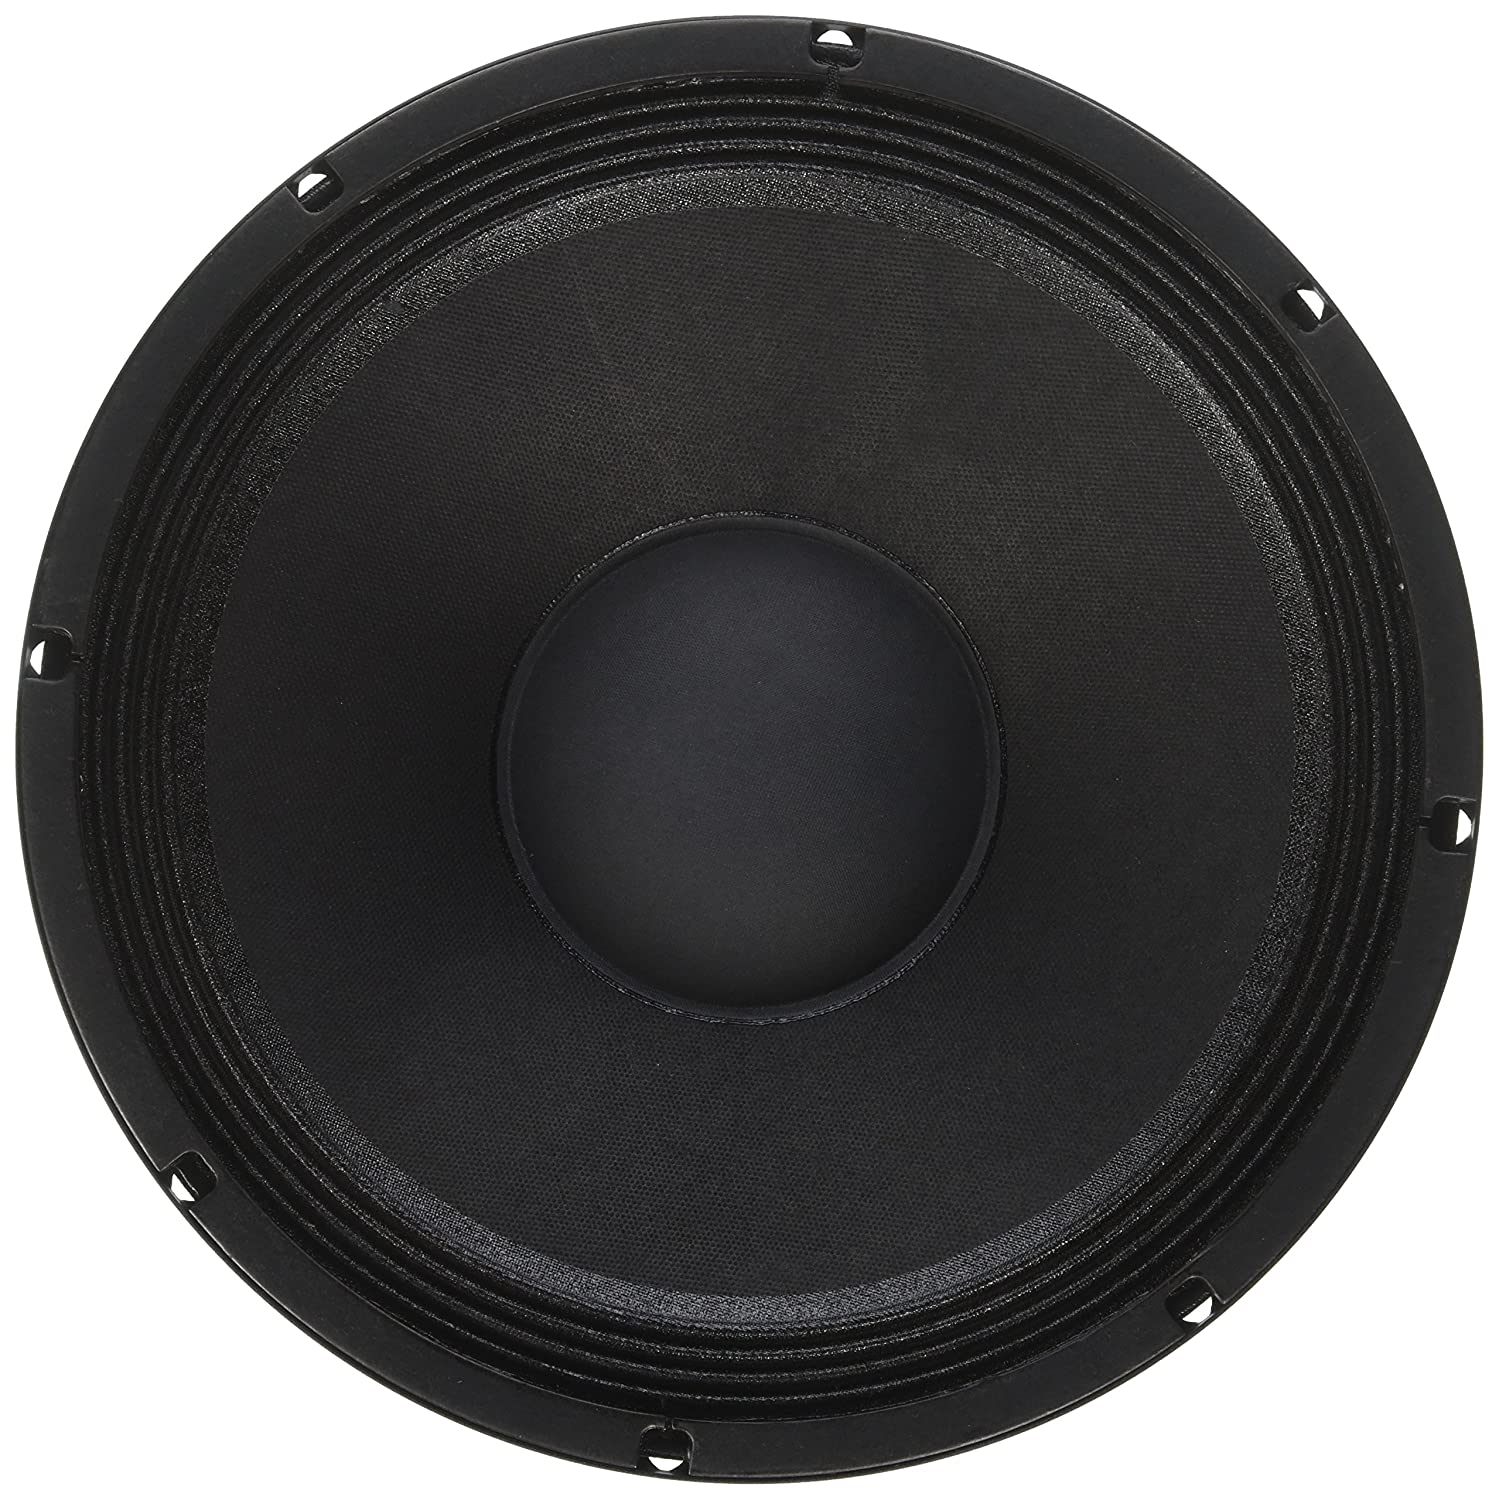 Celestion Pulse Series 12 Inch 200 Watt 8 ohm Ceramic Bass Replacement Speaker 12 in. 8 Ohm T5969